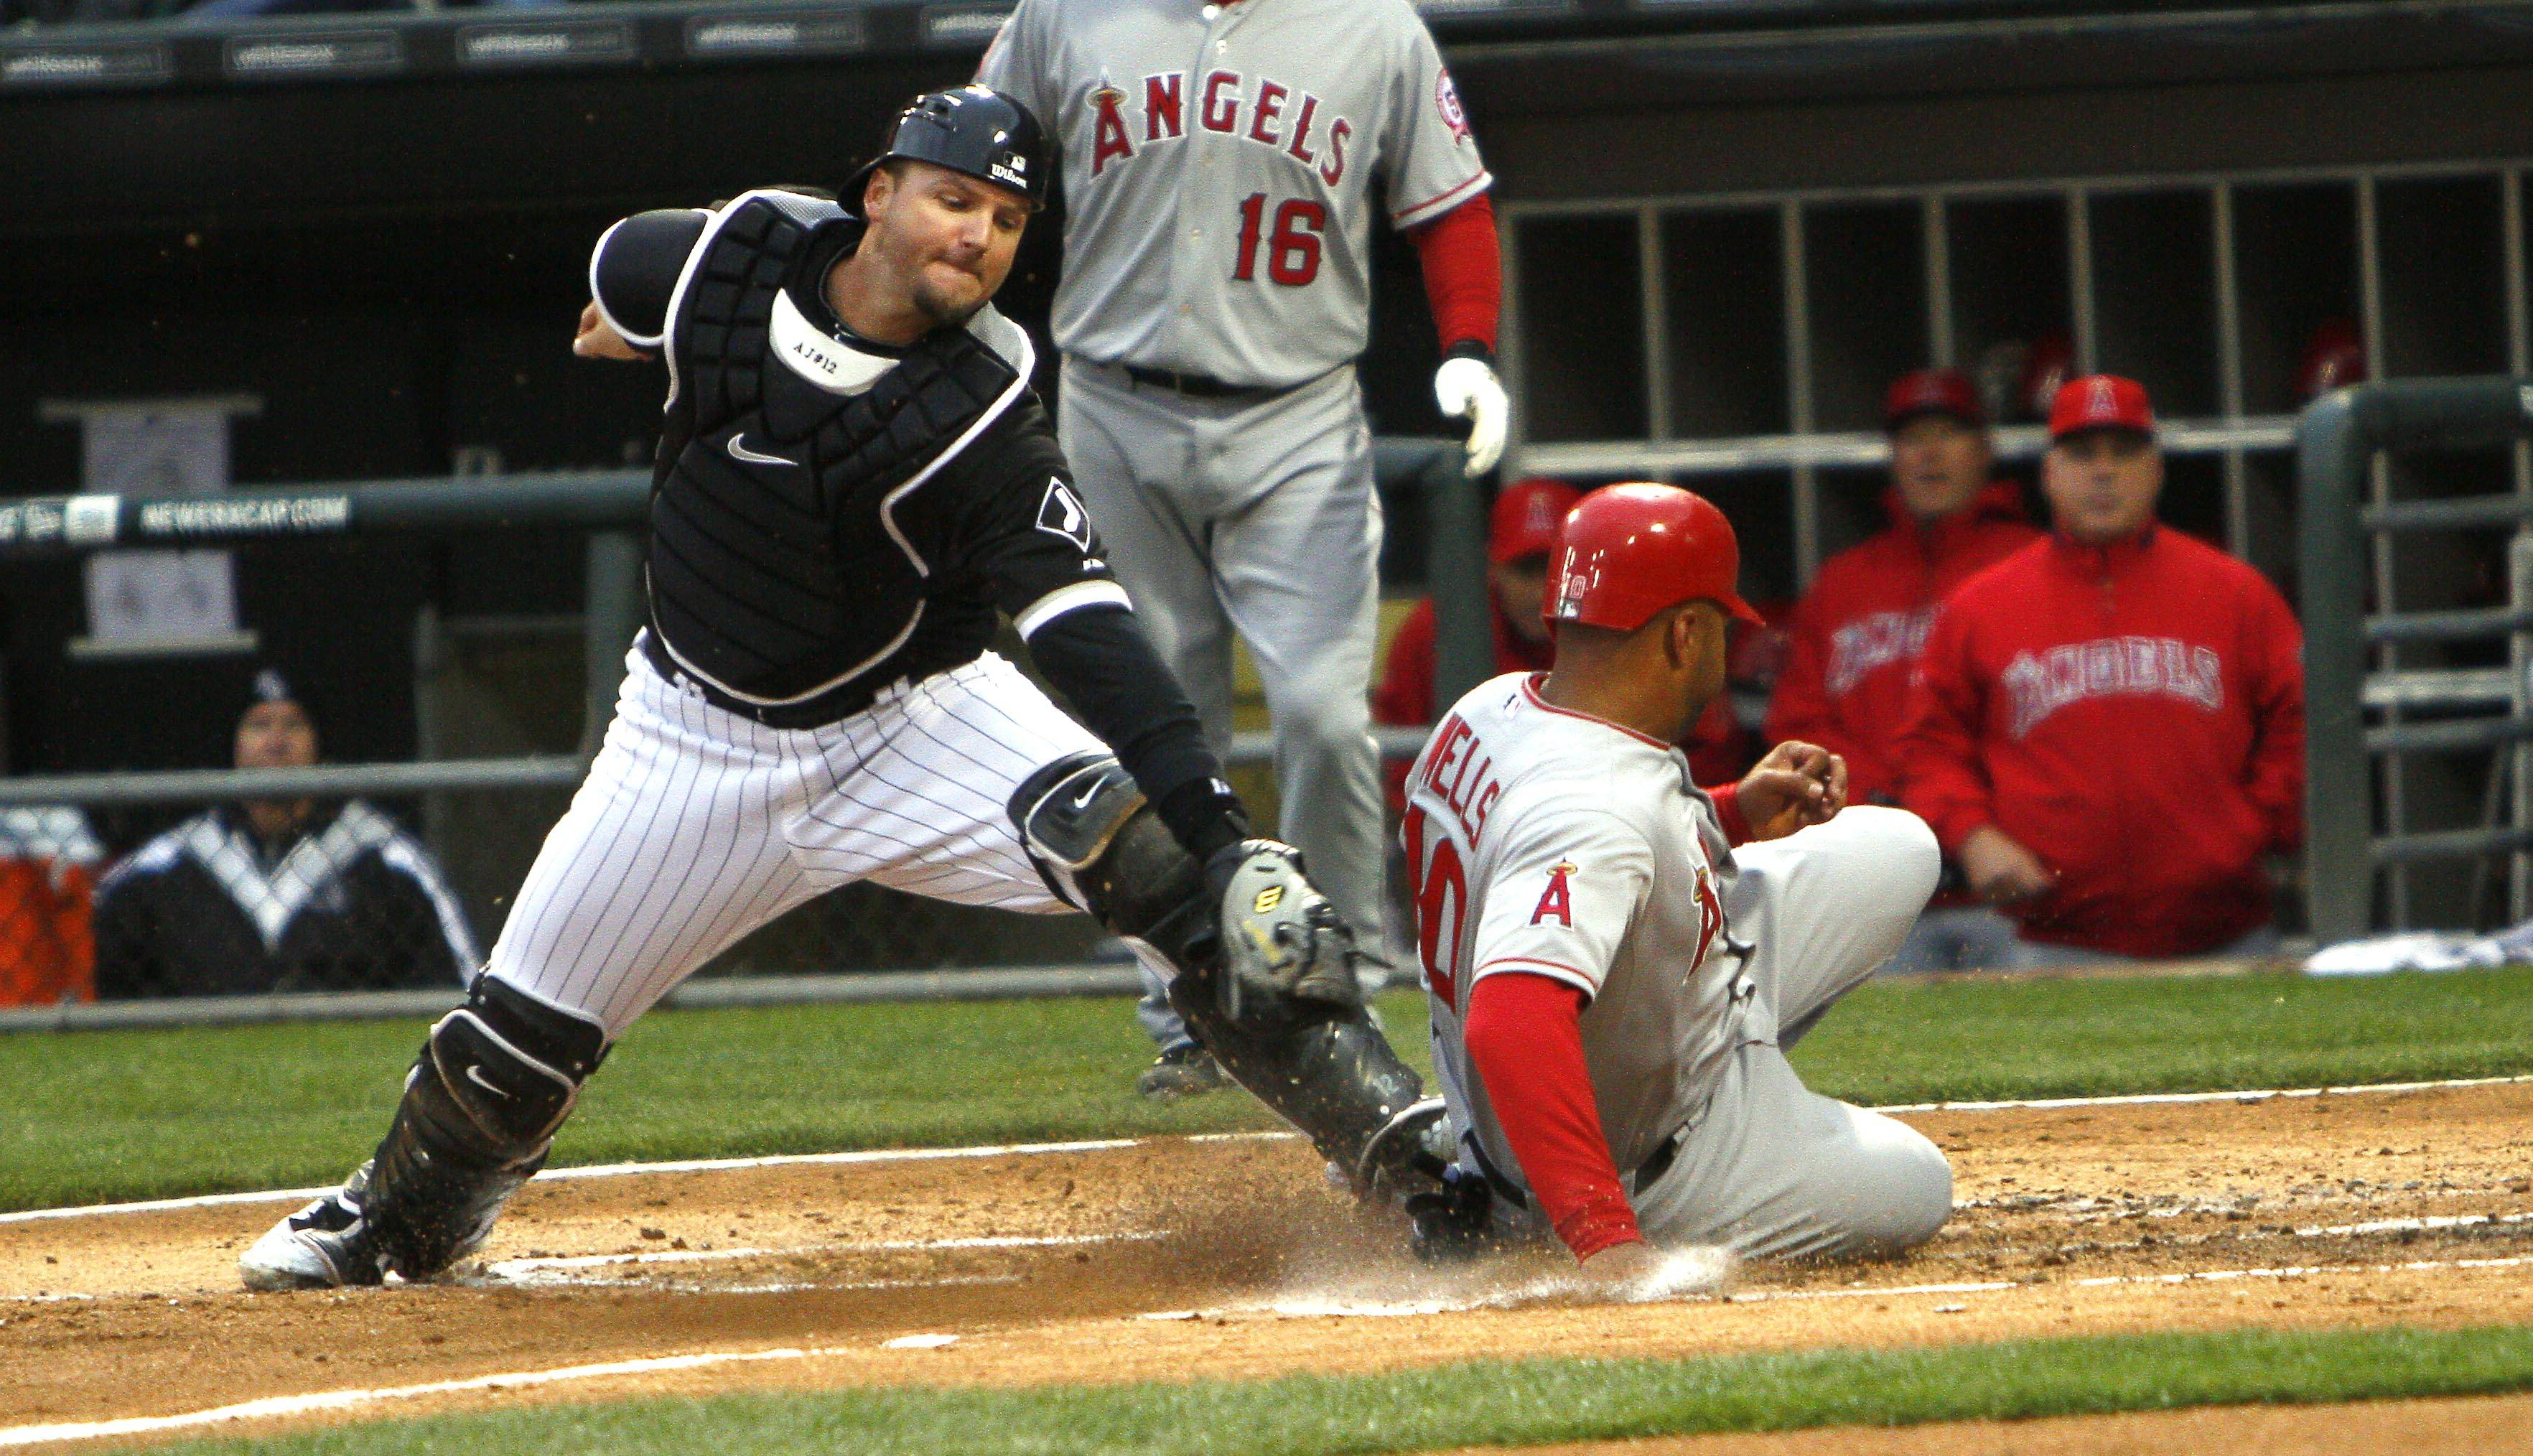 A.J. Pierzynski can't make tag on Los Angeles Angels' Vernon Wells who scores on a wild pitch in the second inning of a baseball game on Saturday.